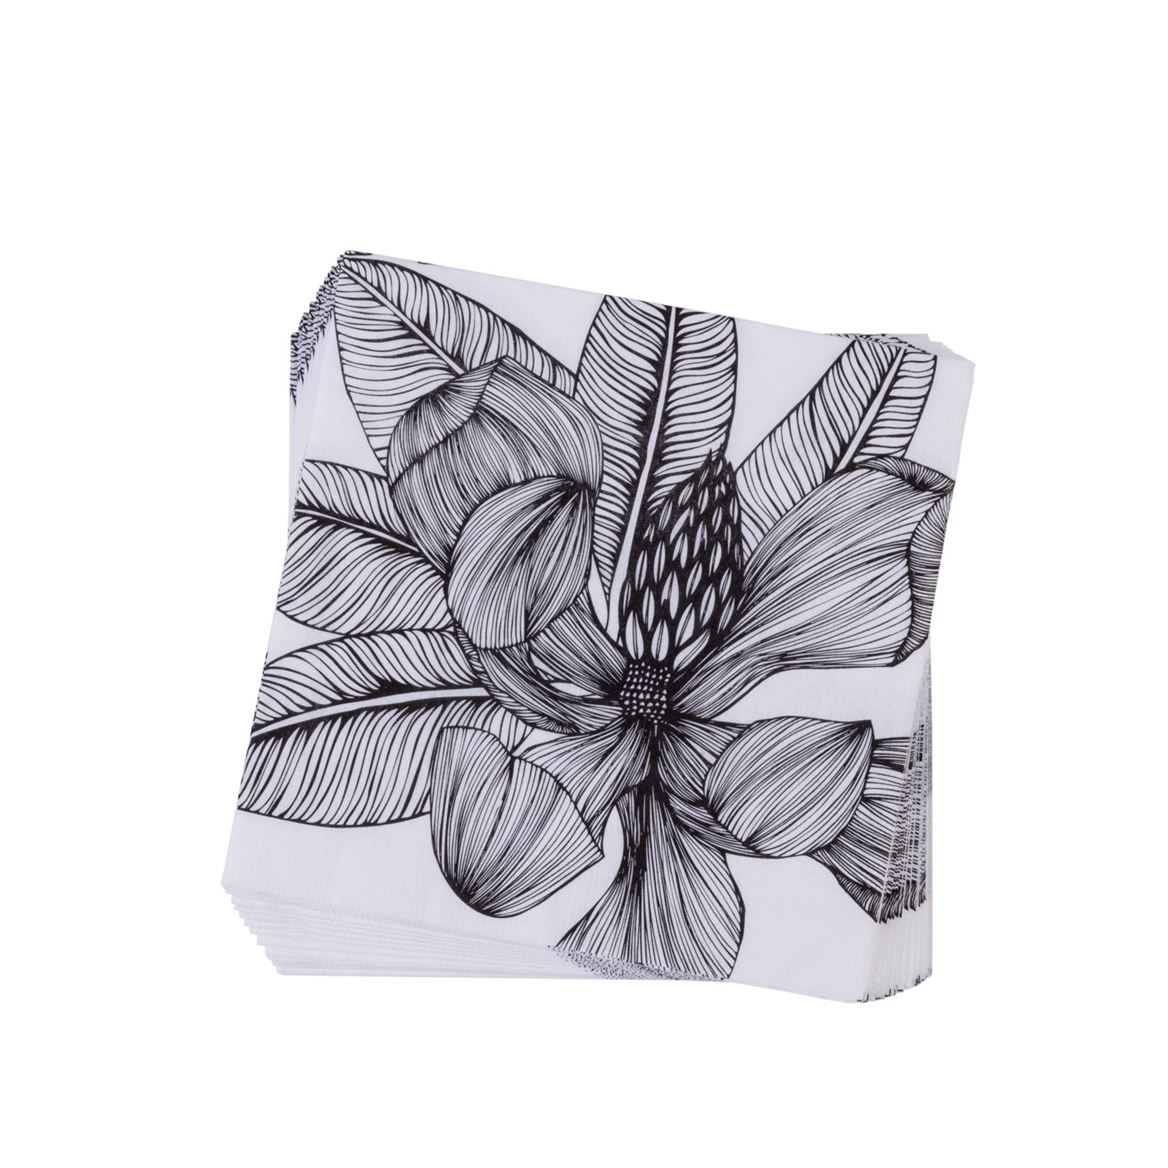 TROPICAL FLOWER Set van 20 servetten zwart, wit B 33 x L 33 cm_tropical-flower-set-van-20-servetten-zwart,-wit-b-33-x-l-33-cm